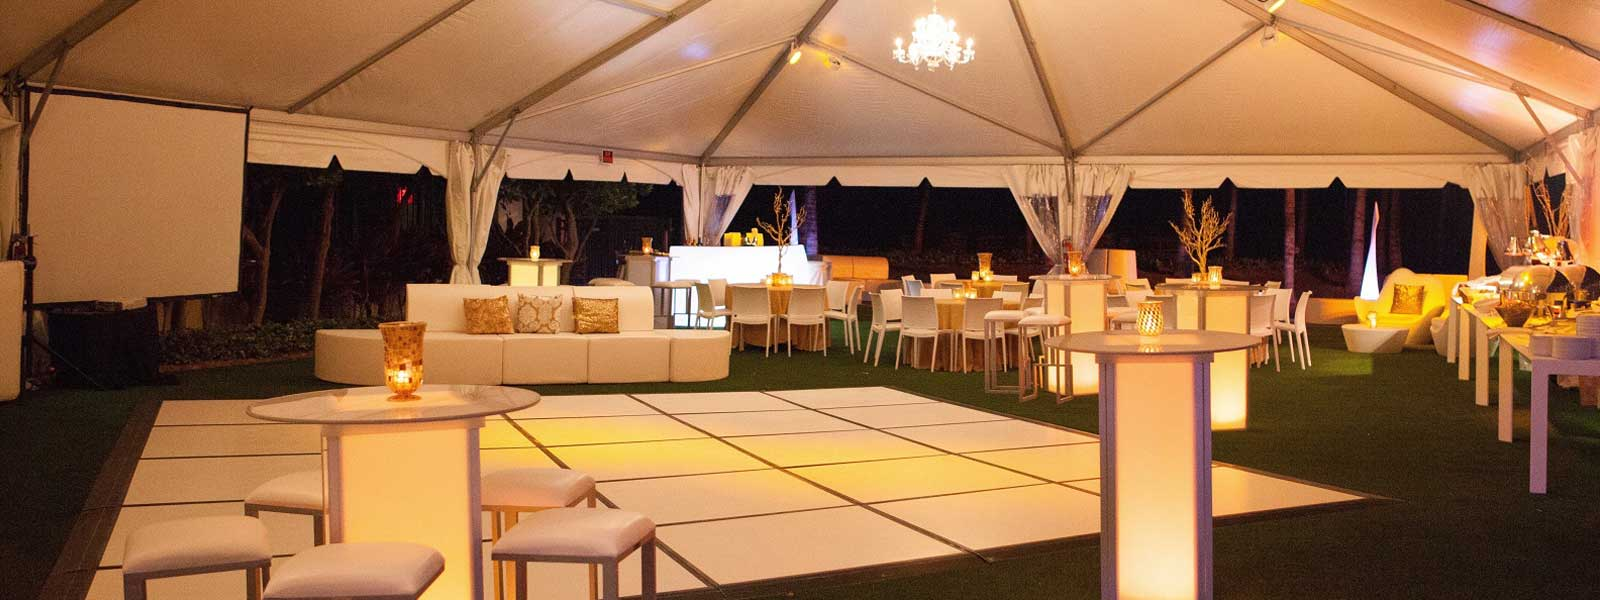 Event rental agency in Miami & Party Rentals Miami FL | Event Rentals Miami Florida Fort ...